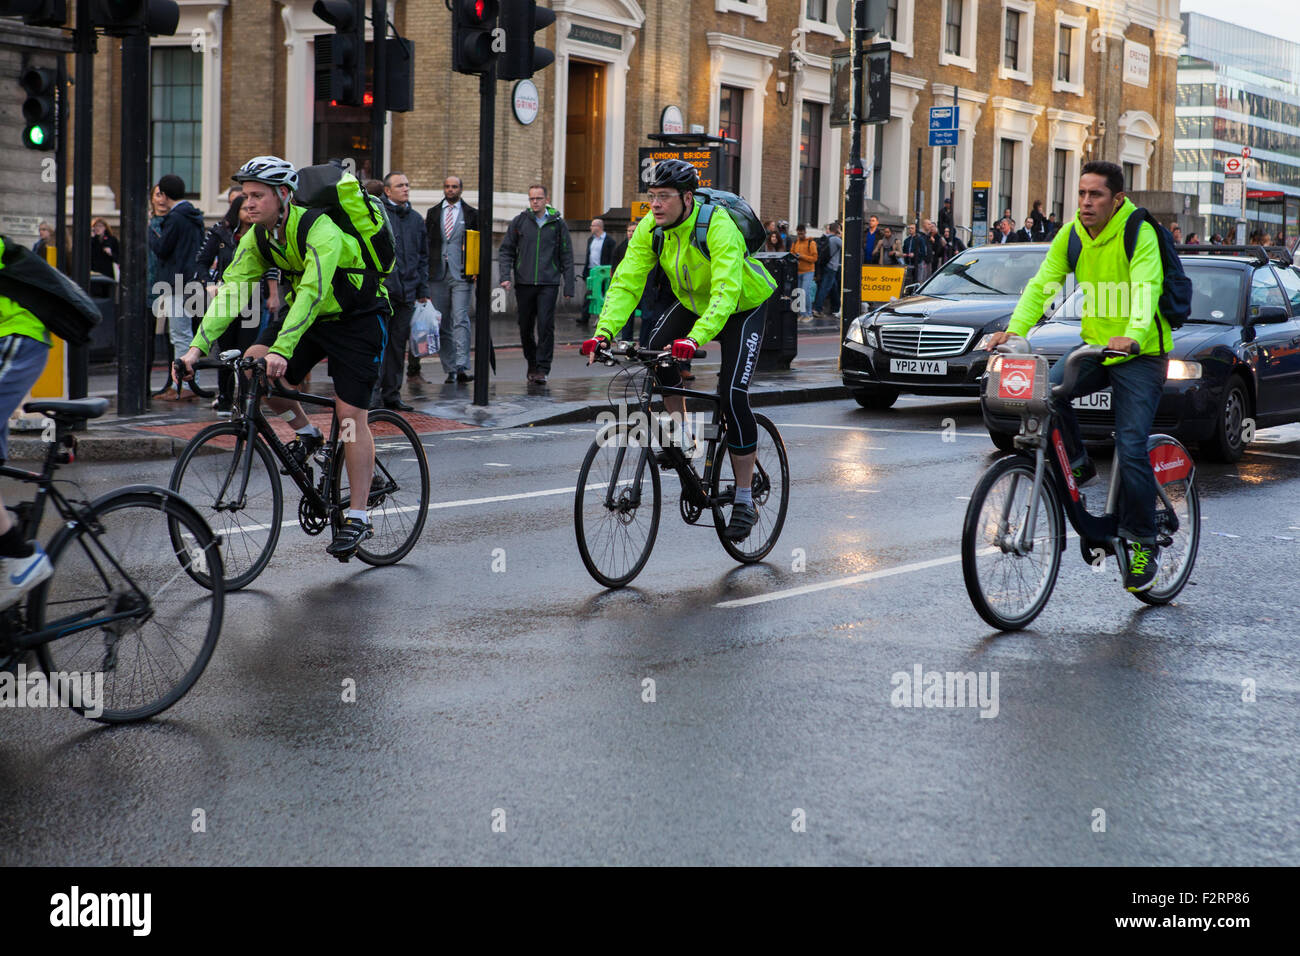 Cyclists wearing high-visibility clothing riding in London Stock Photo